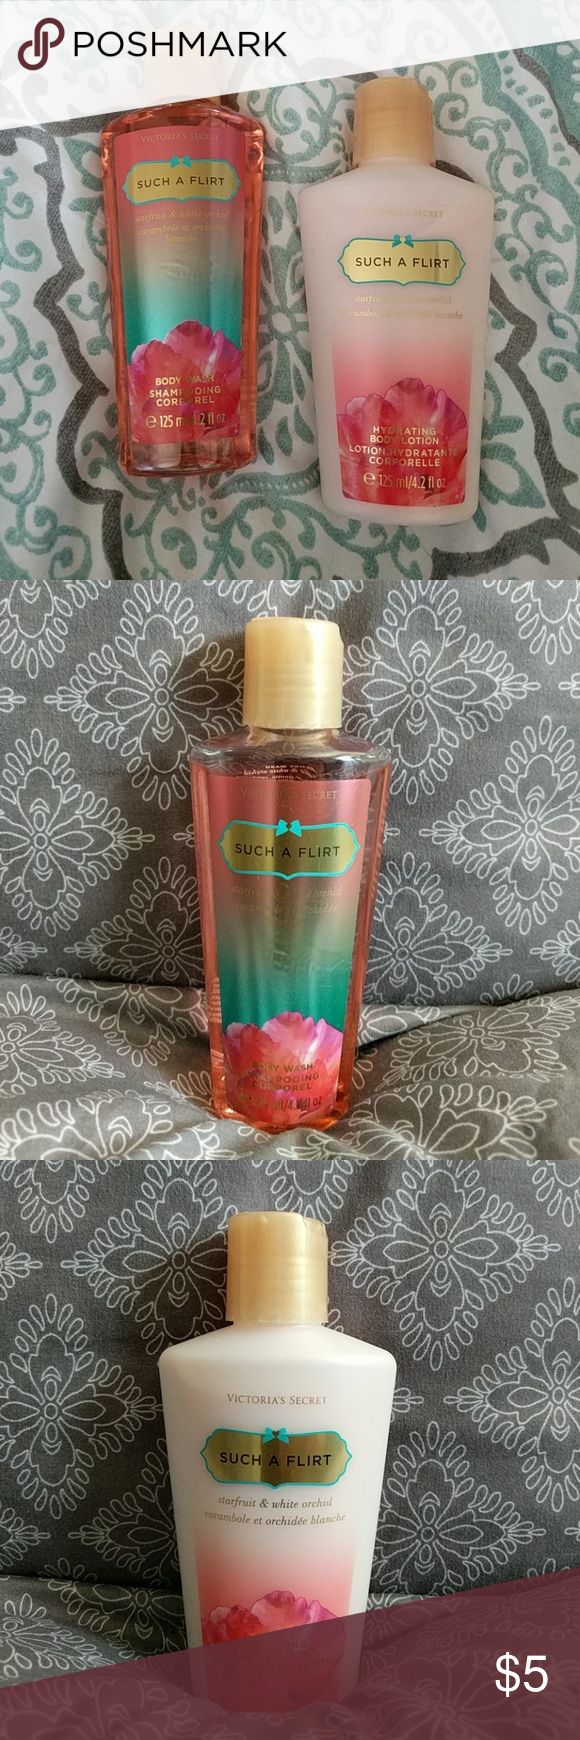 Victoria's Secret Such A Flirt Travel Size Bundle Condition: Used. Each one was only used once or twice, so they are just under full.  NOTICE: If you believe your bundle might weigh more than 5 LBS, please ask me to weigh it before you purchase. I can not pay the added shipping cost for bundles over 5 LBS.   Includes both items pictured! Victoria's Secret Other